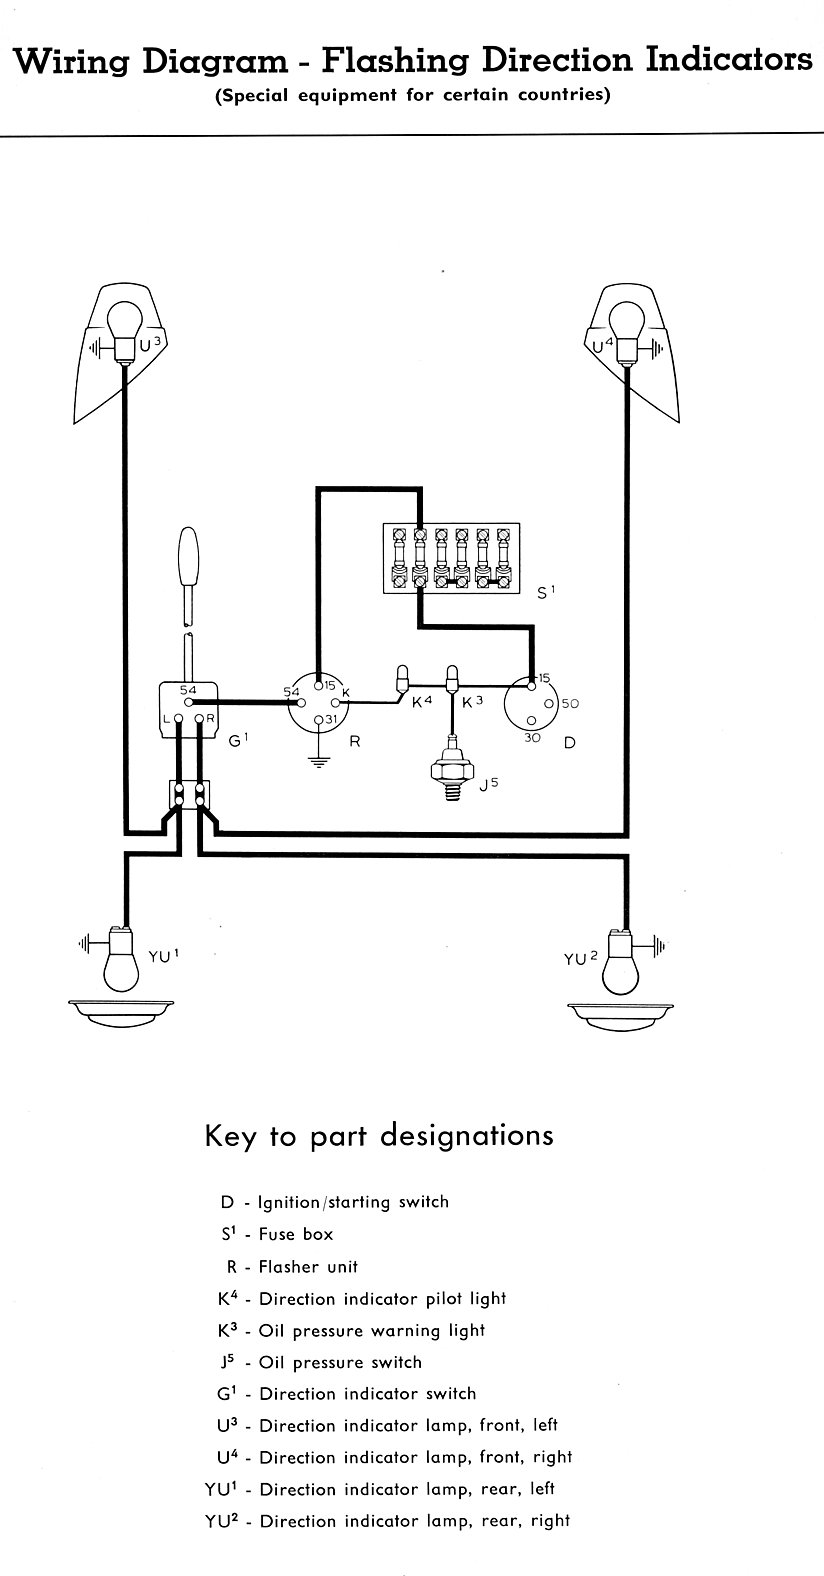 1969 plymouth turn signal wiring diagram 1957 bus wiring diagram | thegoldenbug.com 1970 plymouth turn signal wiring diagram